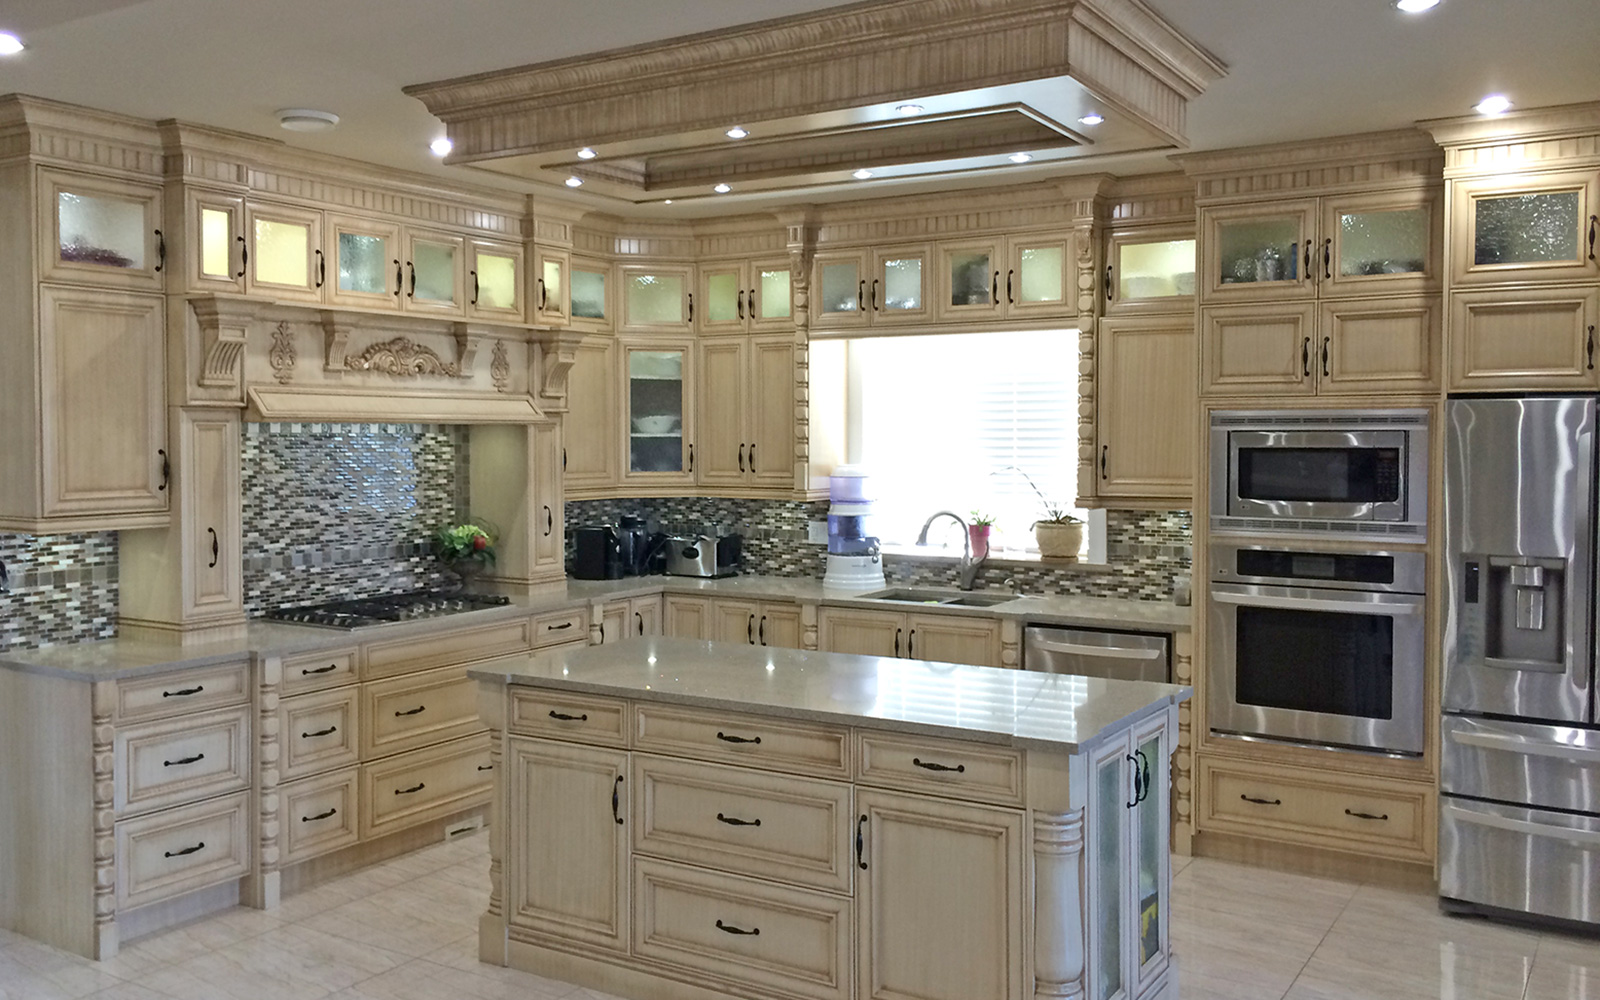 Calgary custom kitchen cabinets ltd kitchen cabinets for Kitchen kitchen